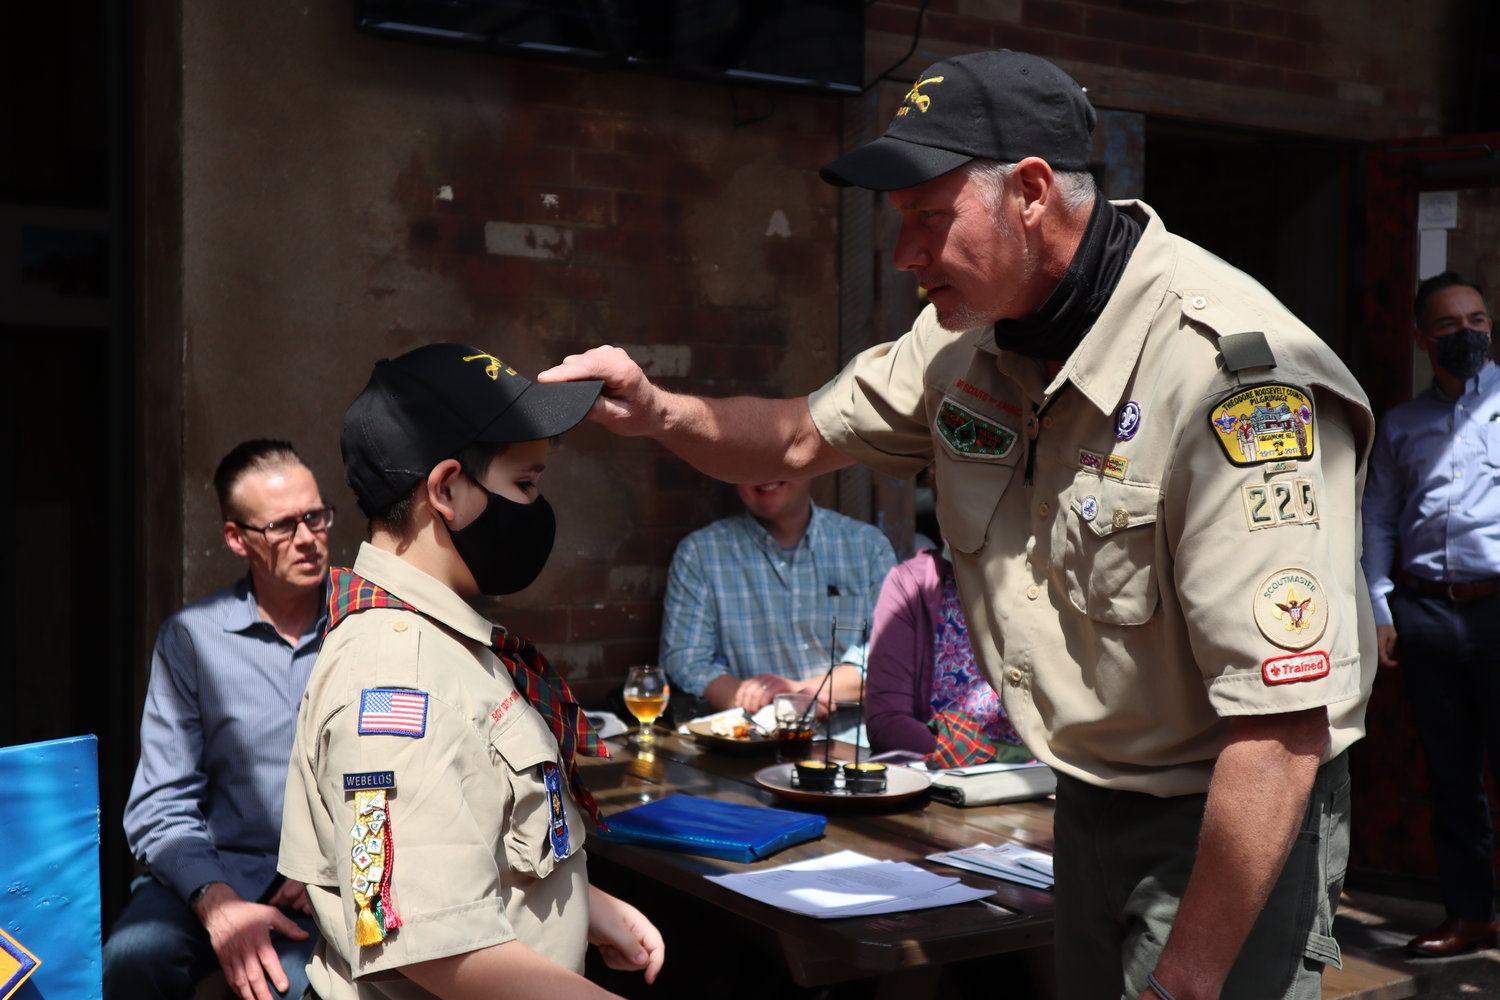 Troop 225 Scout Leader David Walley put a cap on Dezmond Pless, signifying his becoming a Boy Scout and entry into the troop.